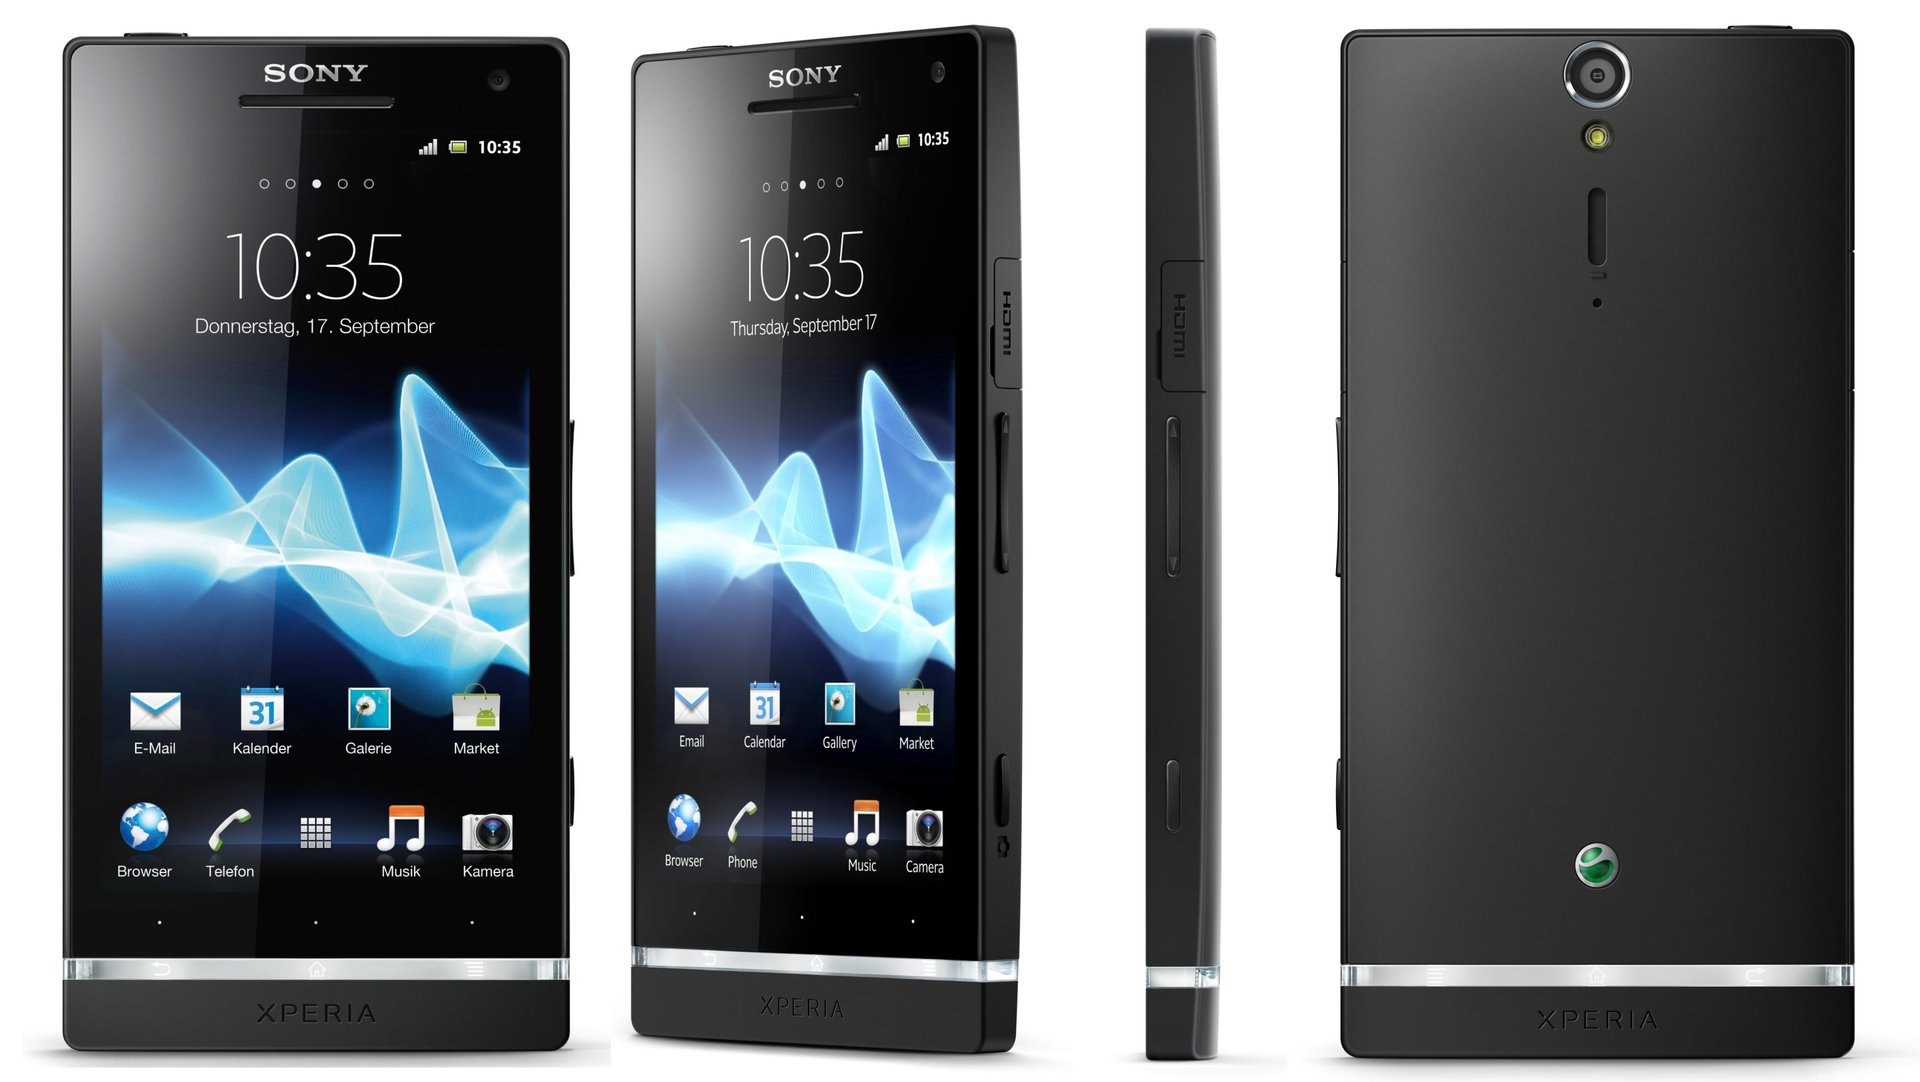 Sony_Xperia_S_Perspectives.jpg